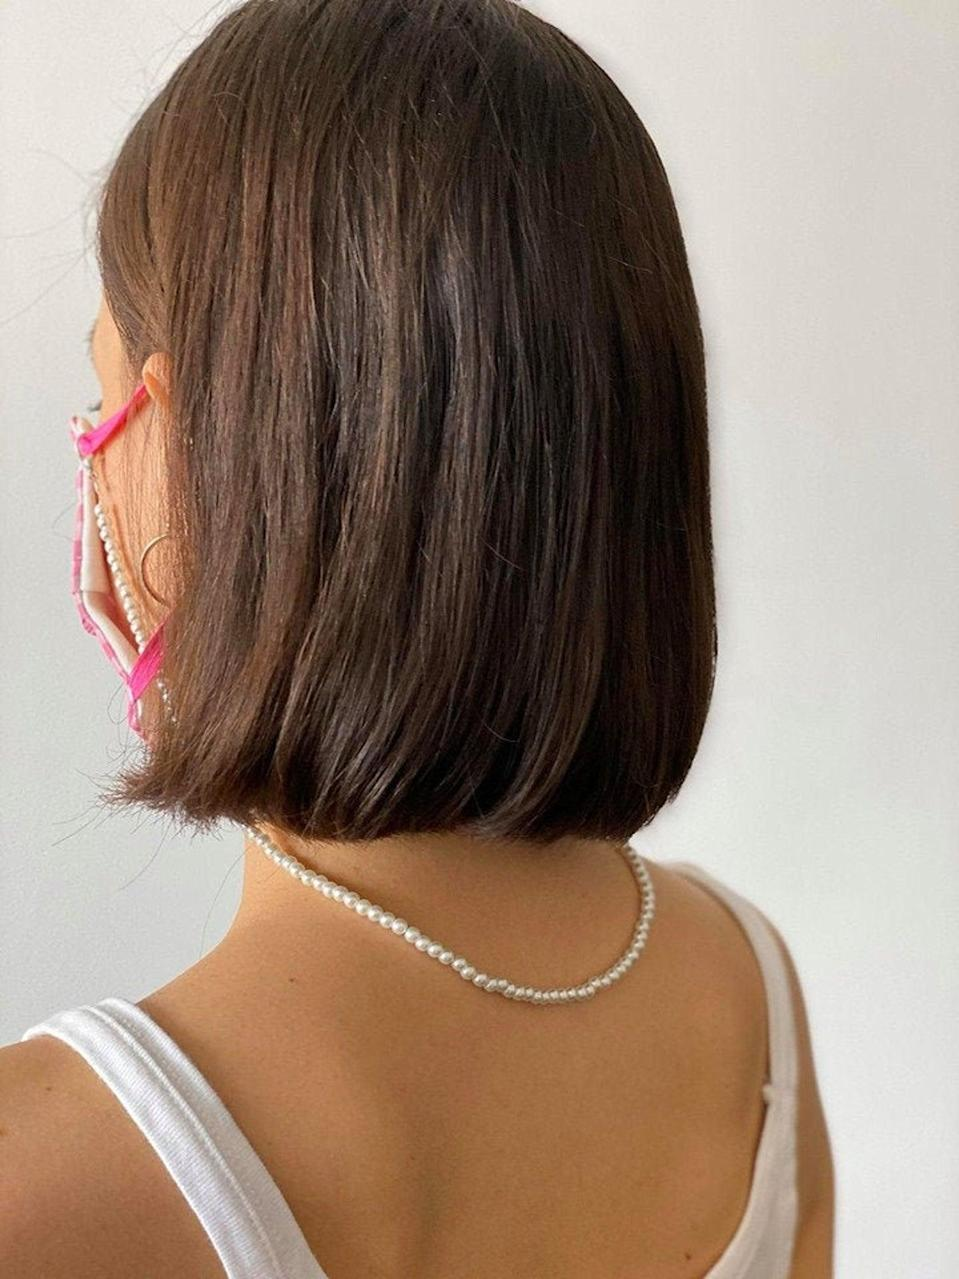 """If you're never not misplacing your own, opt for this pearl face mask chain that will literally be right under your nose at all times. $21, Etsy. <a href=""""https://www.etsy.com/listing/802368801/face-mask-chain-pearl-necklace-mask"""" rel=""""nofollow noopener"""" target=""""_blank"""" data-ylk=""""slk:Get it now!"""" class=""""link rapid-noclick-resp"""">Get it now!</a>"""